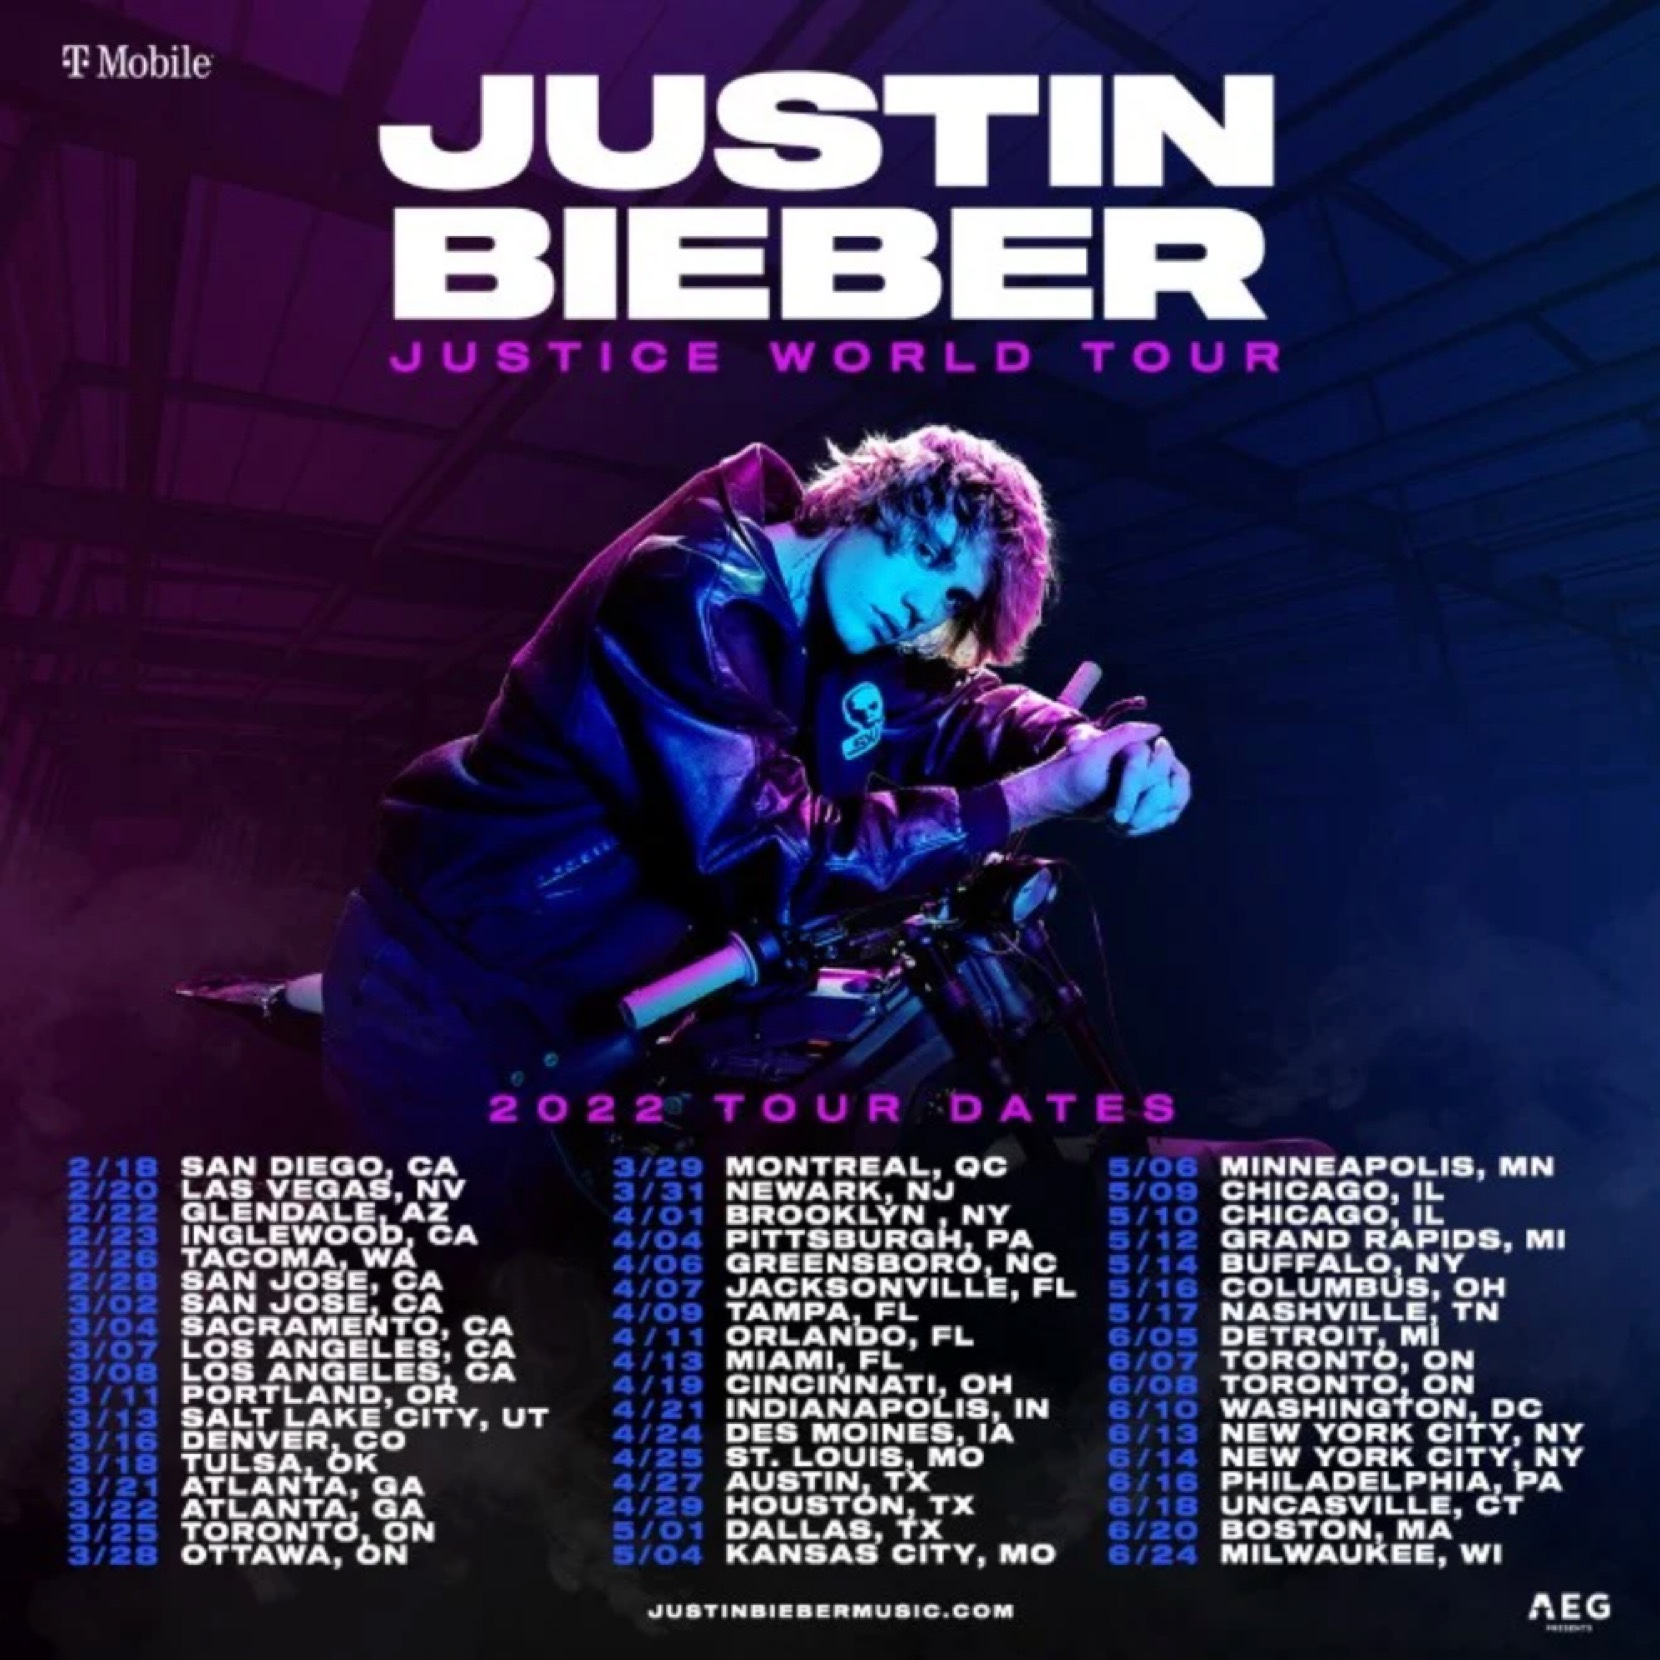 Justin Bieber Justice World Tour image via Justin Bieber for use by 360 Magazine